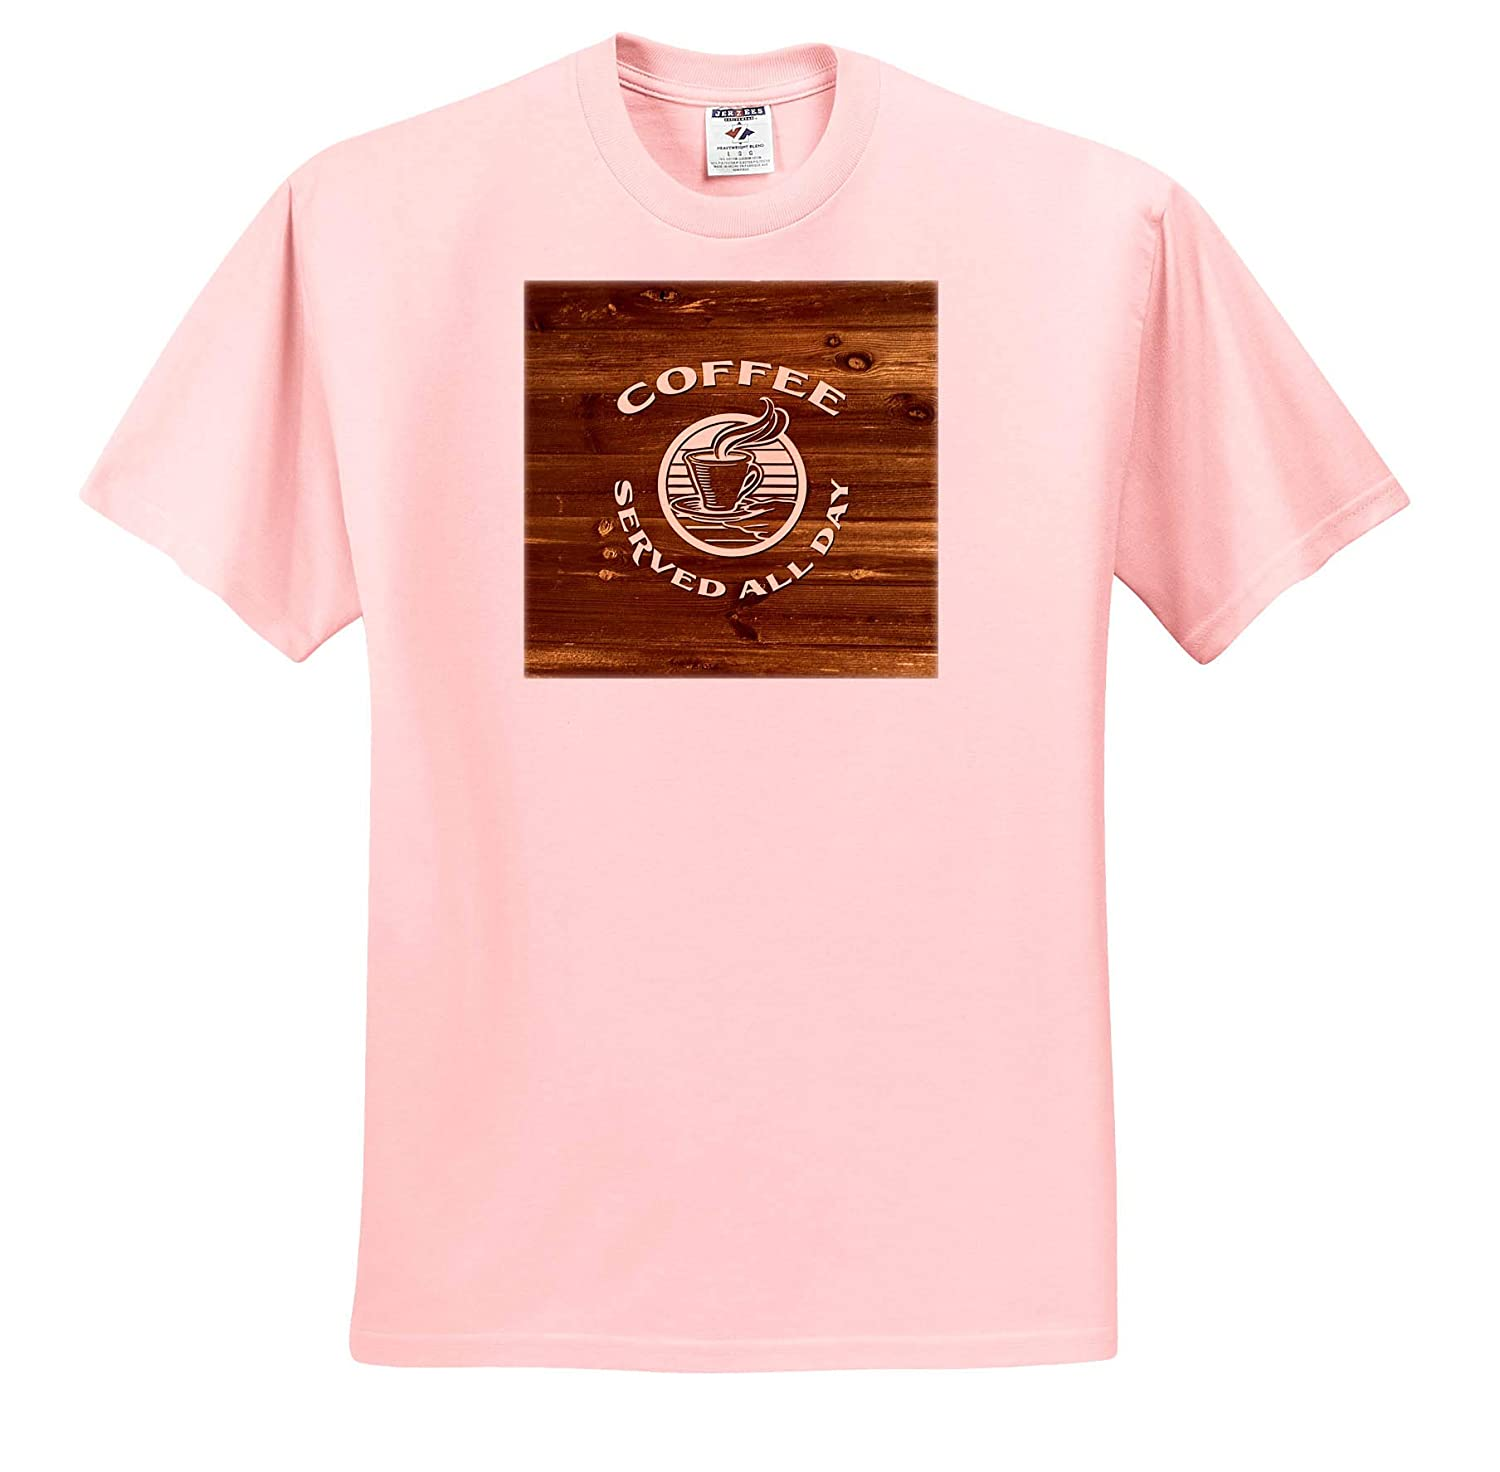 3dRose Russ Billington Designs not Real Wood Ivory Text on Brown Wood Coffee Served All Day T-Shirts